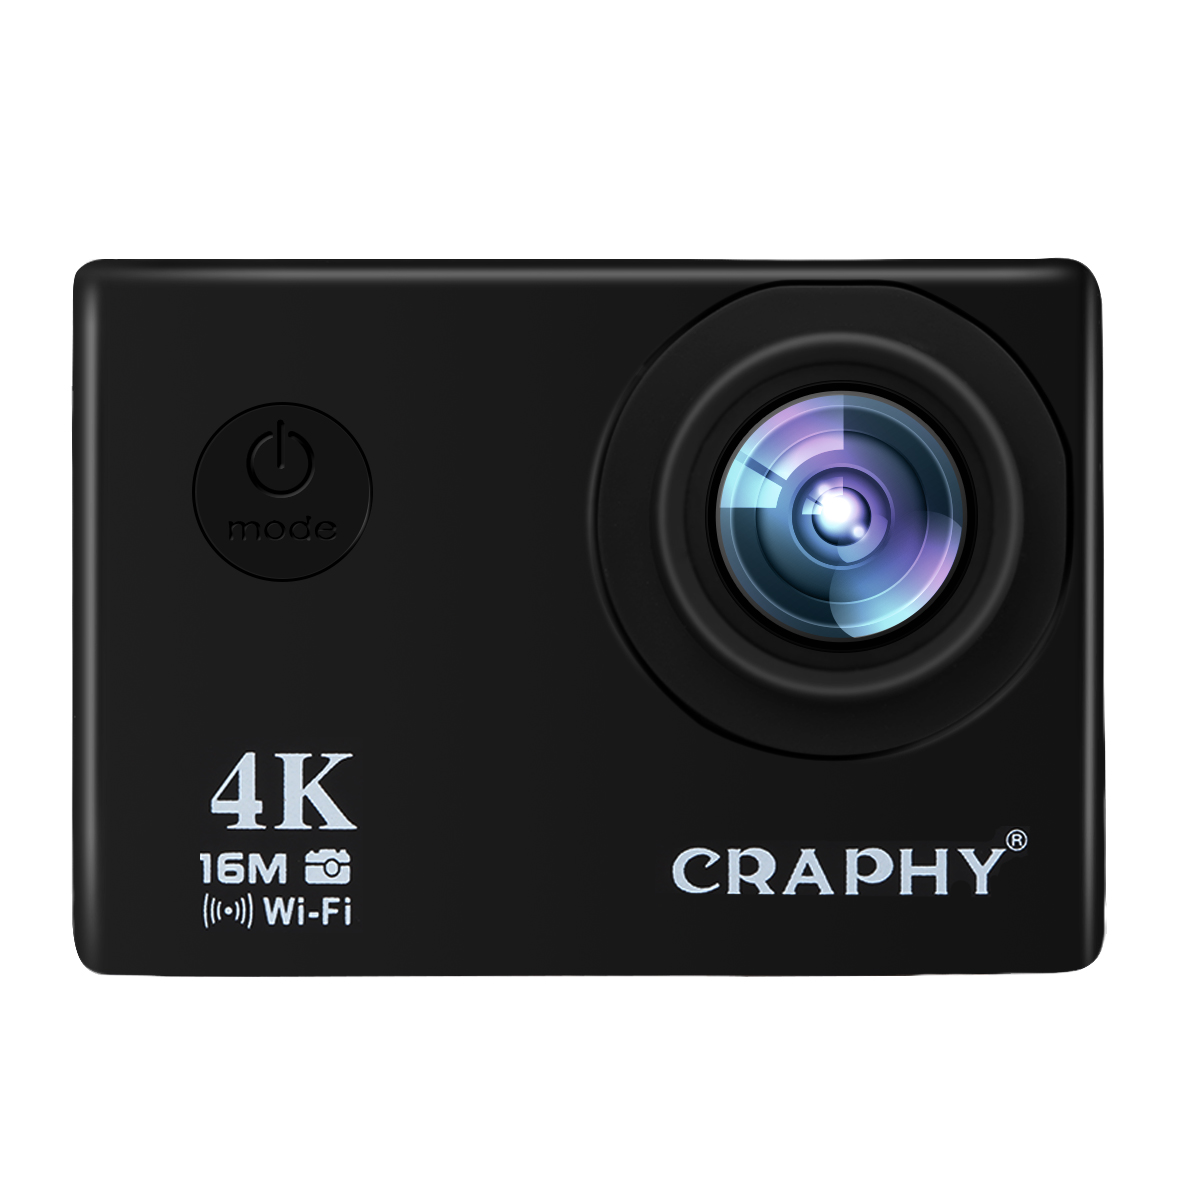 Camcorder Support Tf Card Premium Video Recorder Sport Camera 20 433mhz Working Frequencyremote Start Motorcycle Alarmled Type Craphy V3 4k Uhd Sports Dv Action Mini